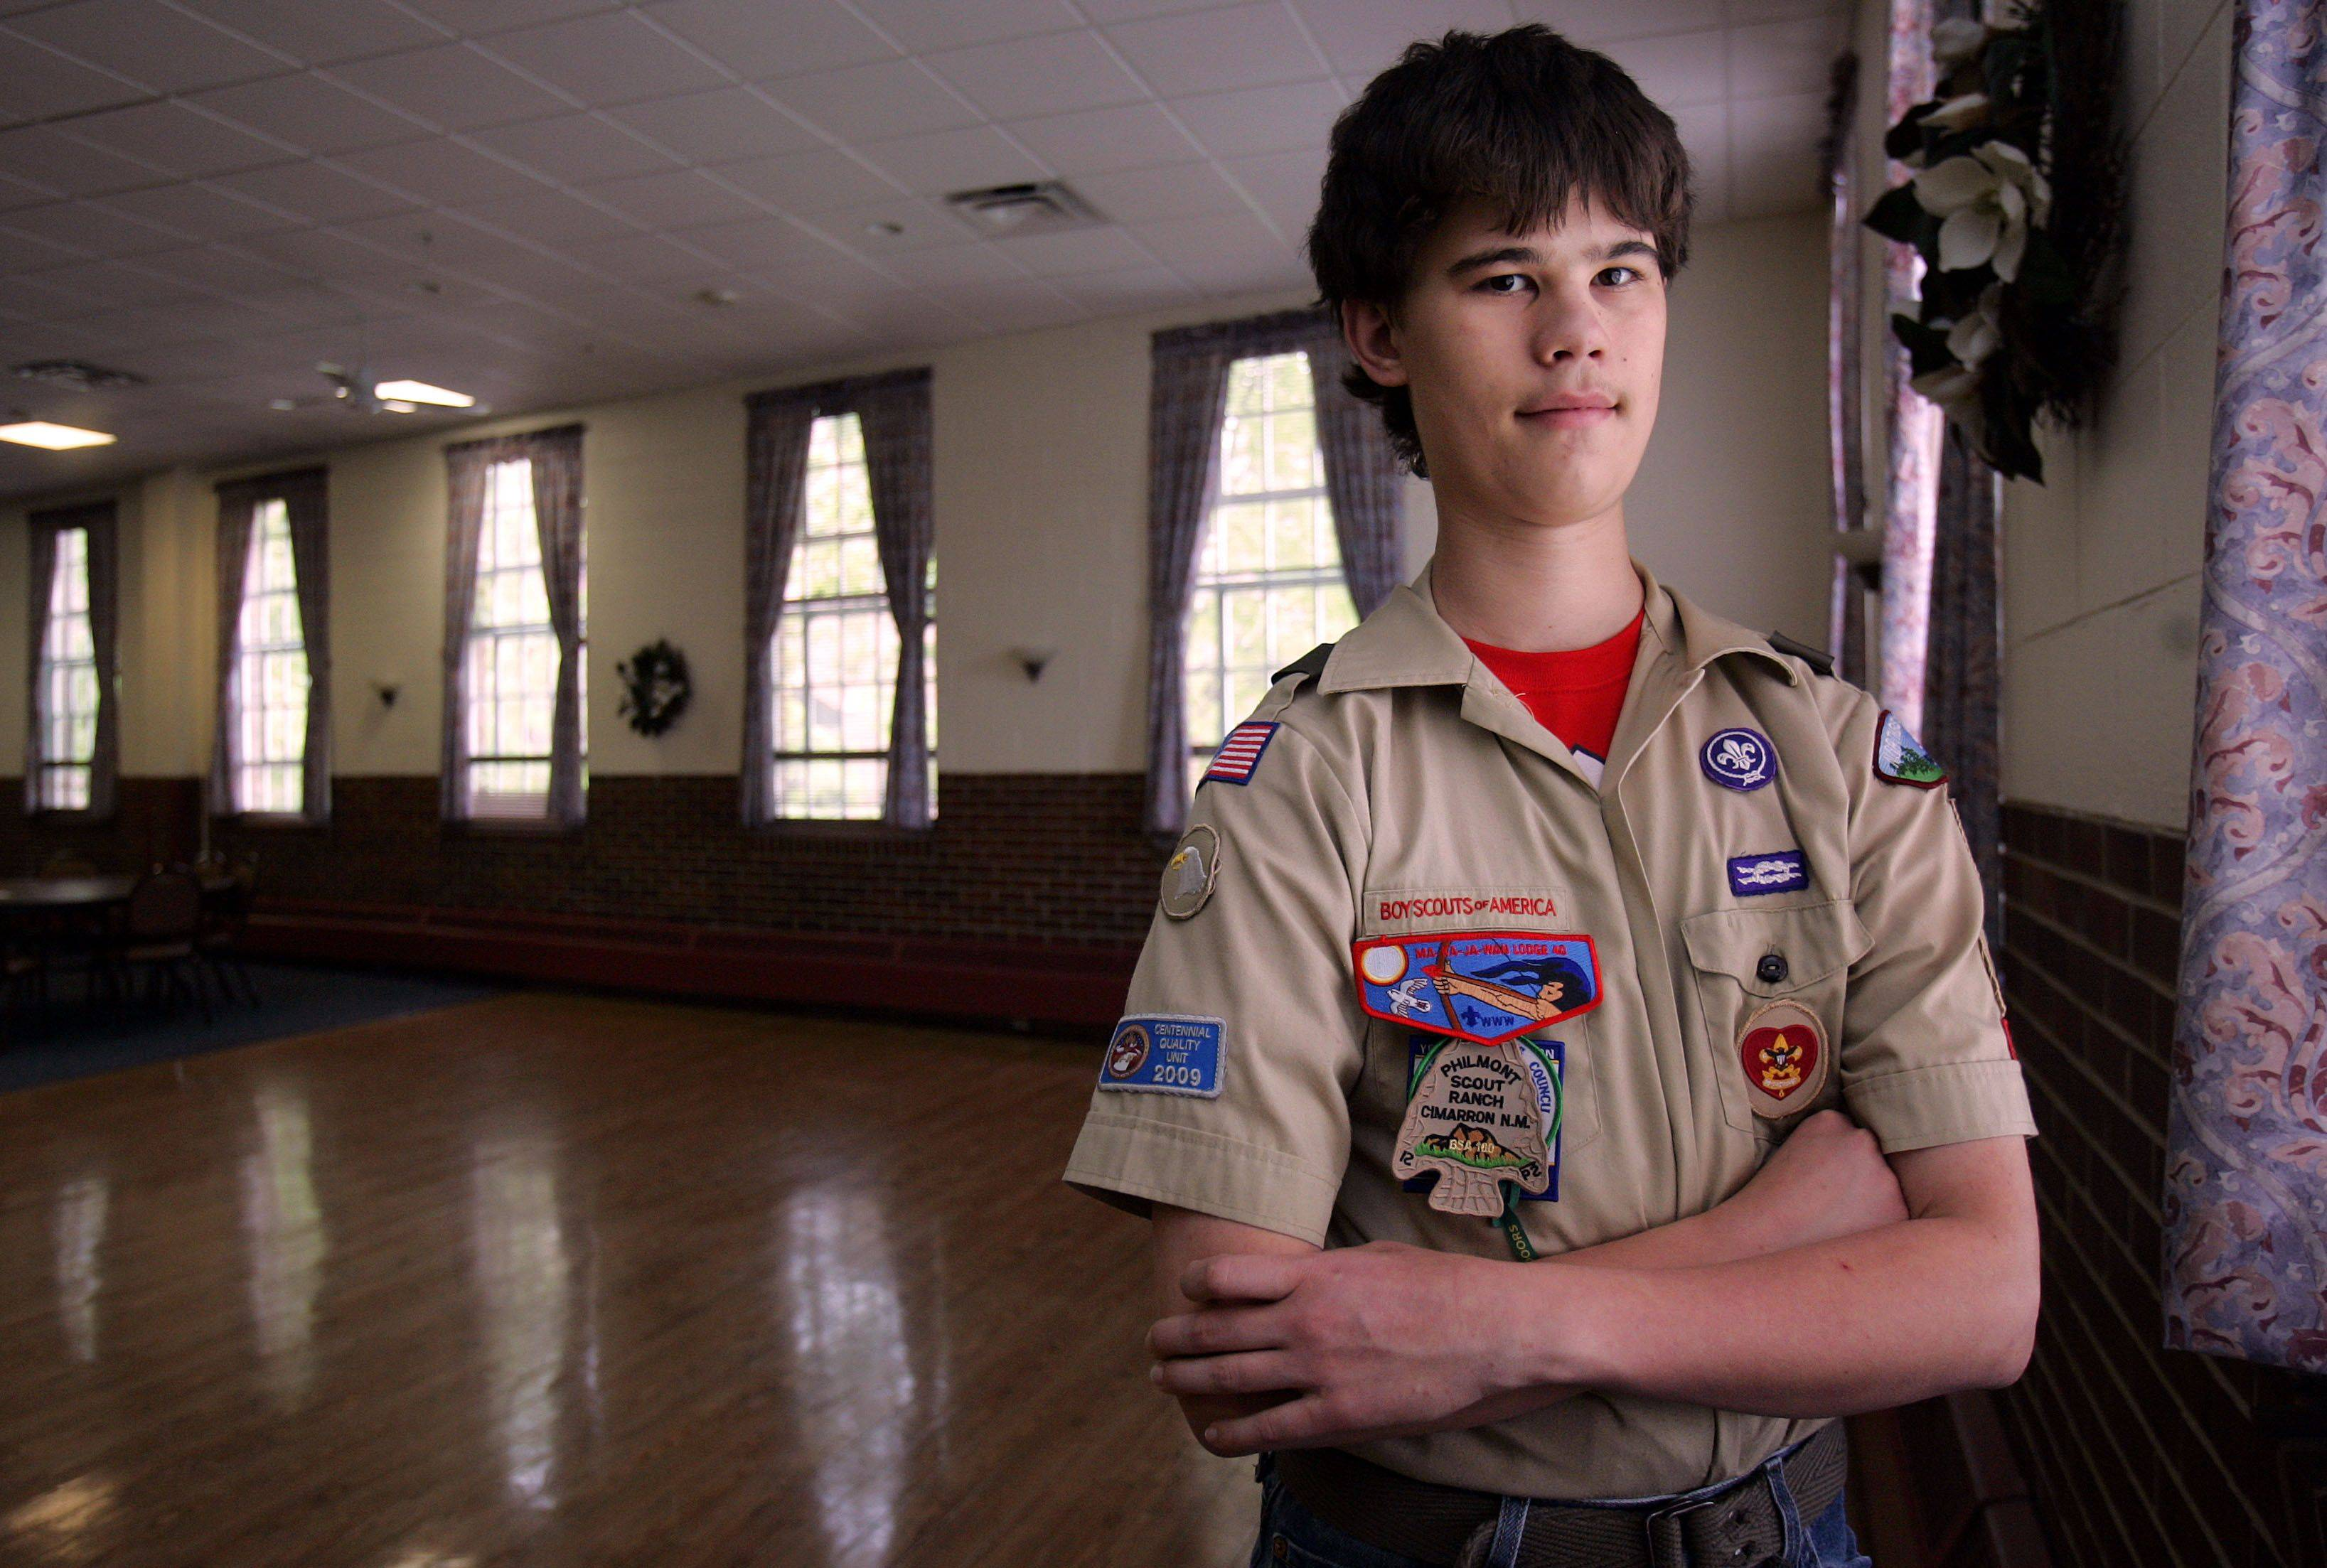 Matt Berklan, 15, of Libertyville is working on his final Eagle Scout project before reaching the Boy Scouts' highest honor. Berklan is collecting sports gear to donate to kids in Tanzania. One of his collection boxes is at the Libertyville Civic Center.